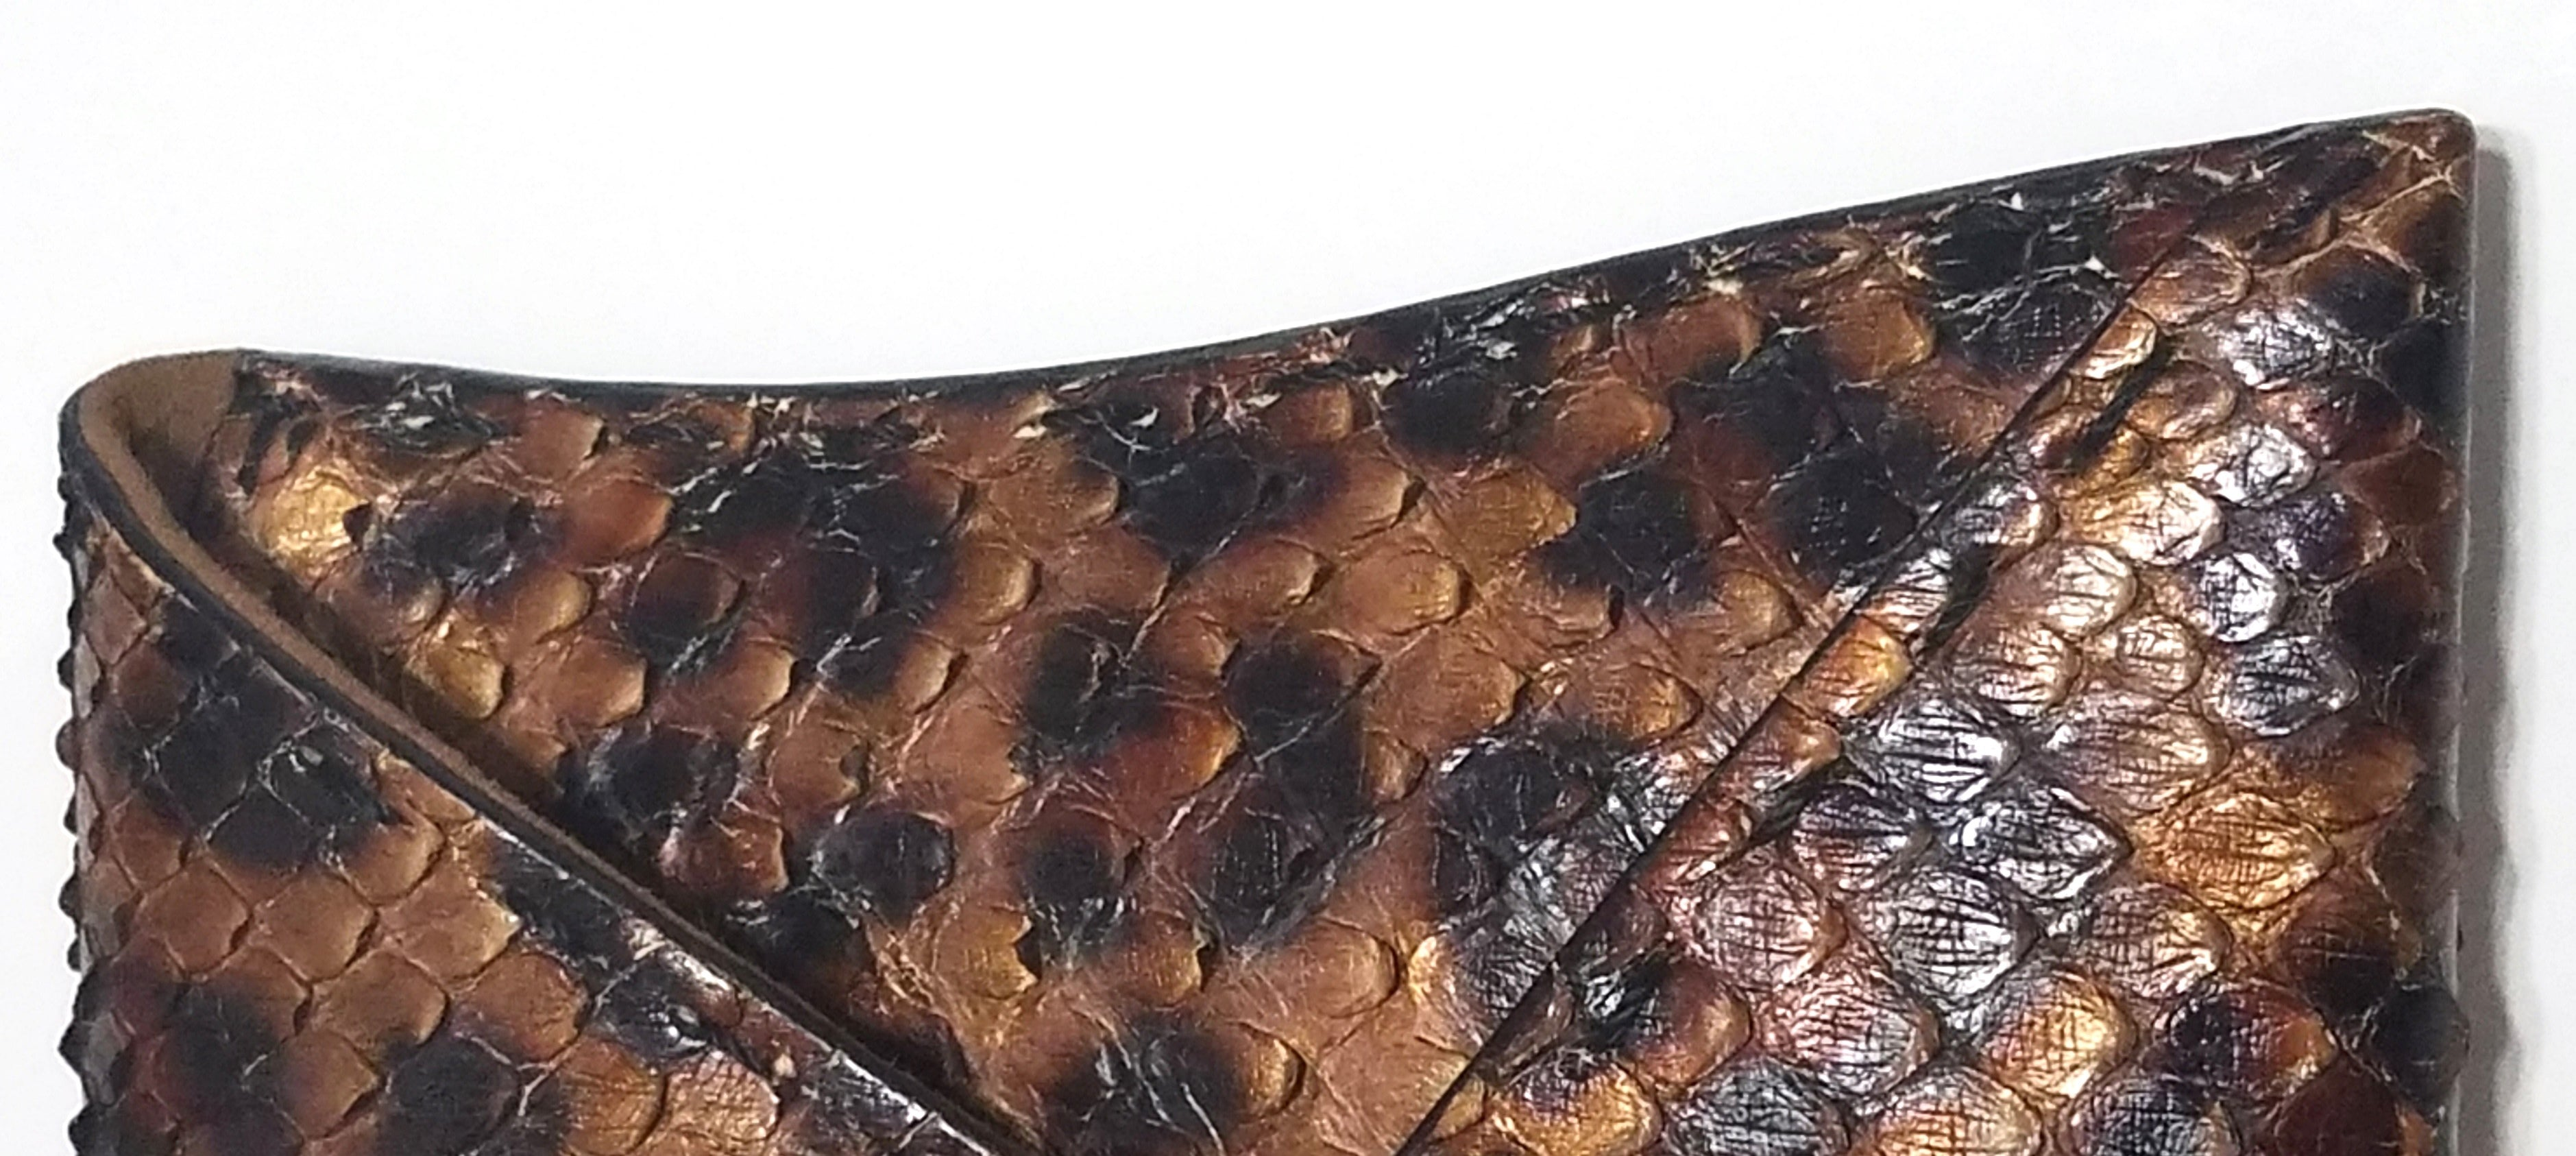 VBH Bronze Copper Gold Leopard Print Python Snakeskin Manila Envelope Clutch Ltd